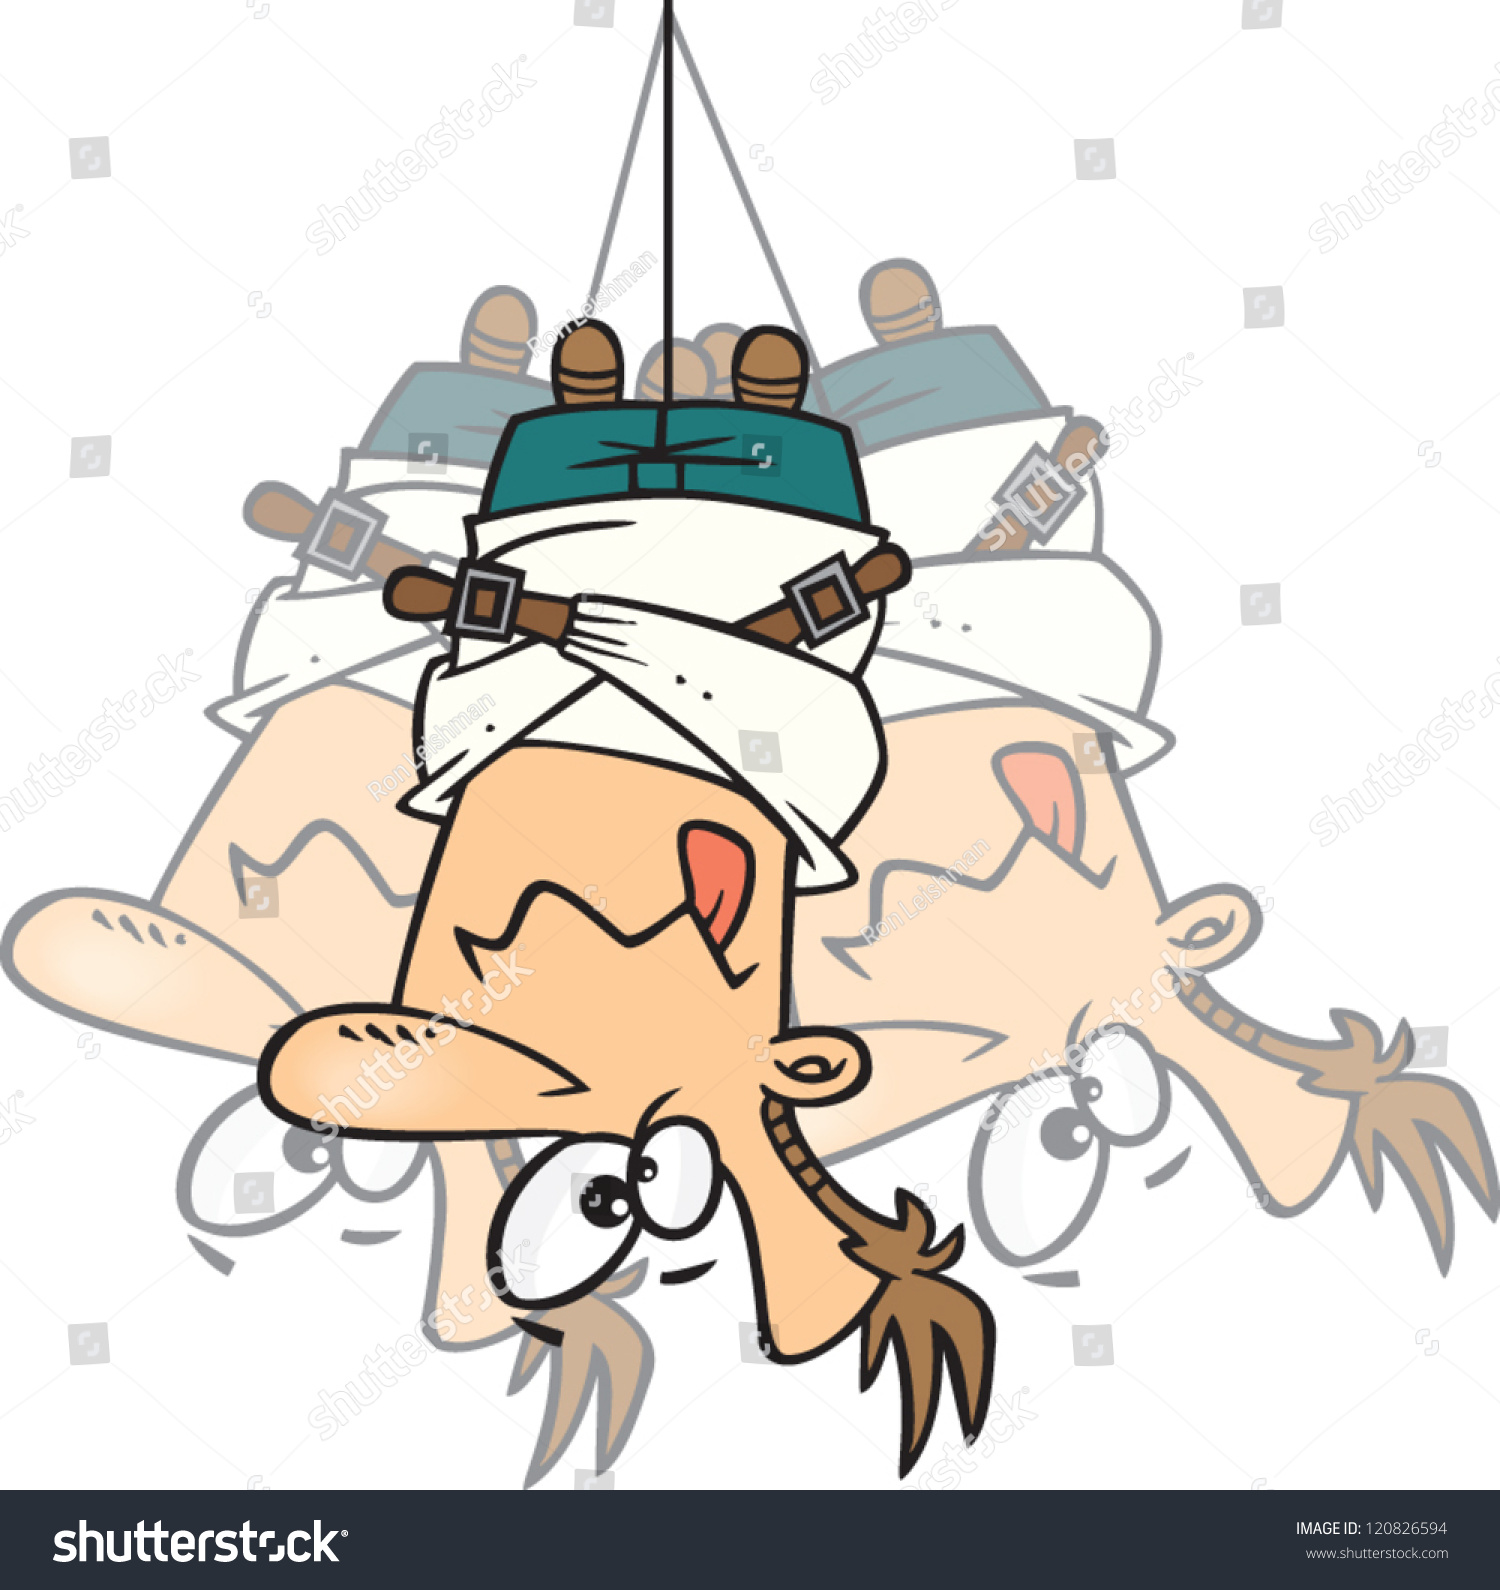 Crazy Cartoon Man Straight Jacket Hanging Stock Vector 120826594